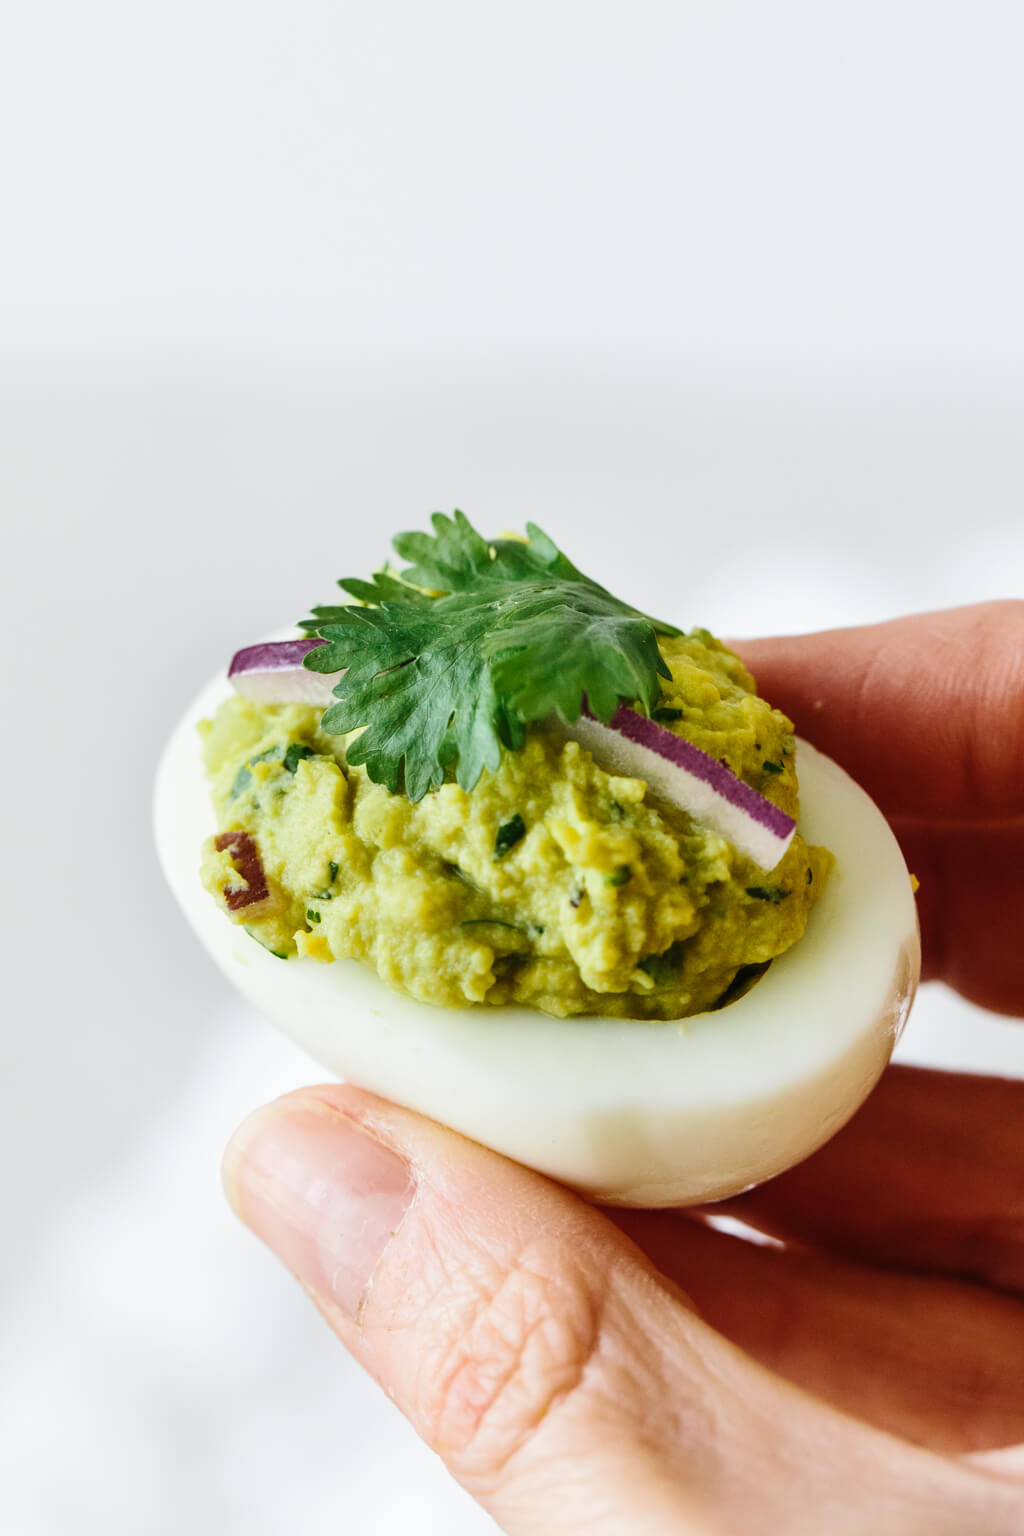 Close up photo of hand holding avocado deviled eggs.